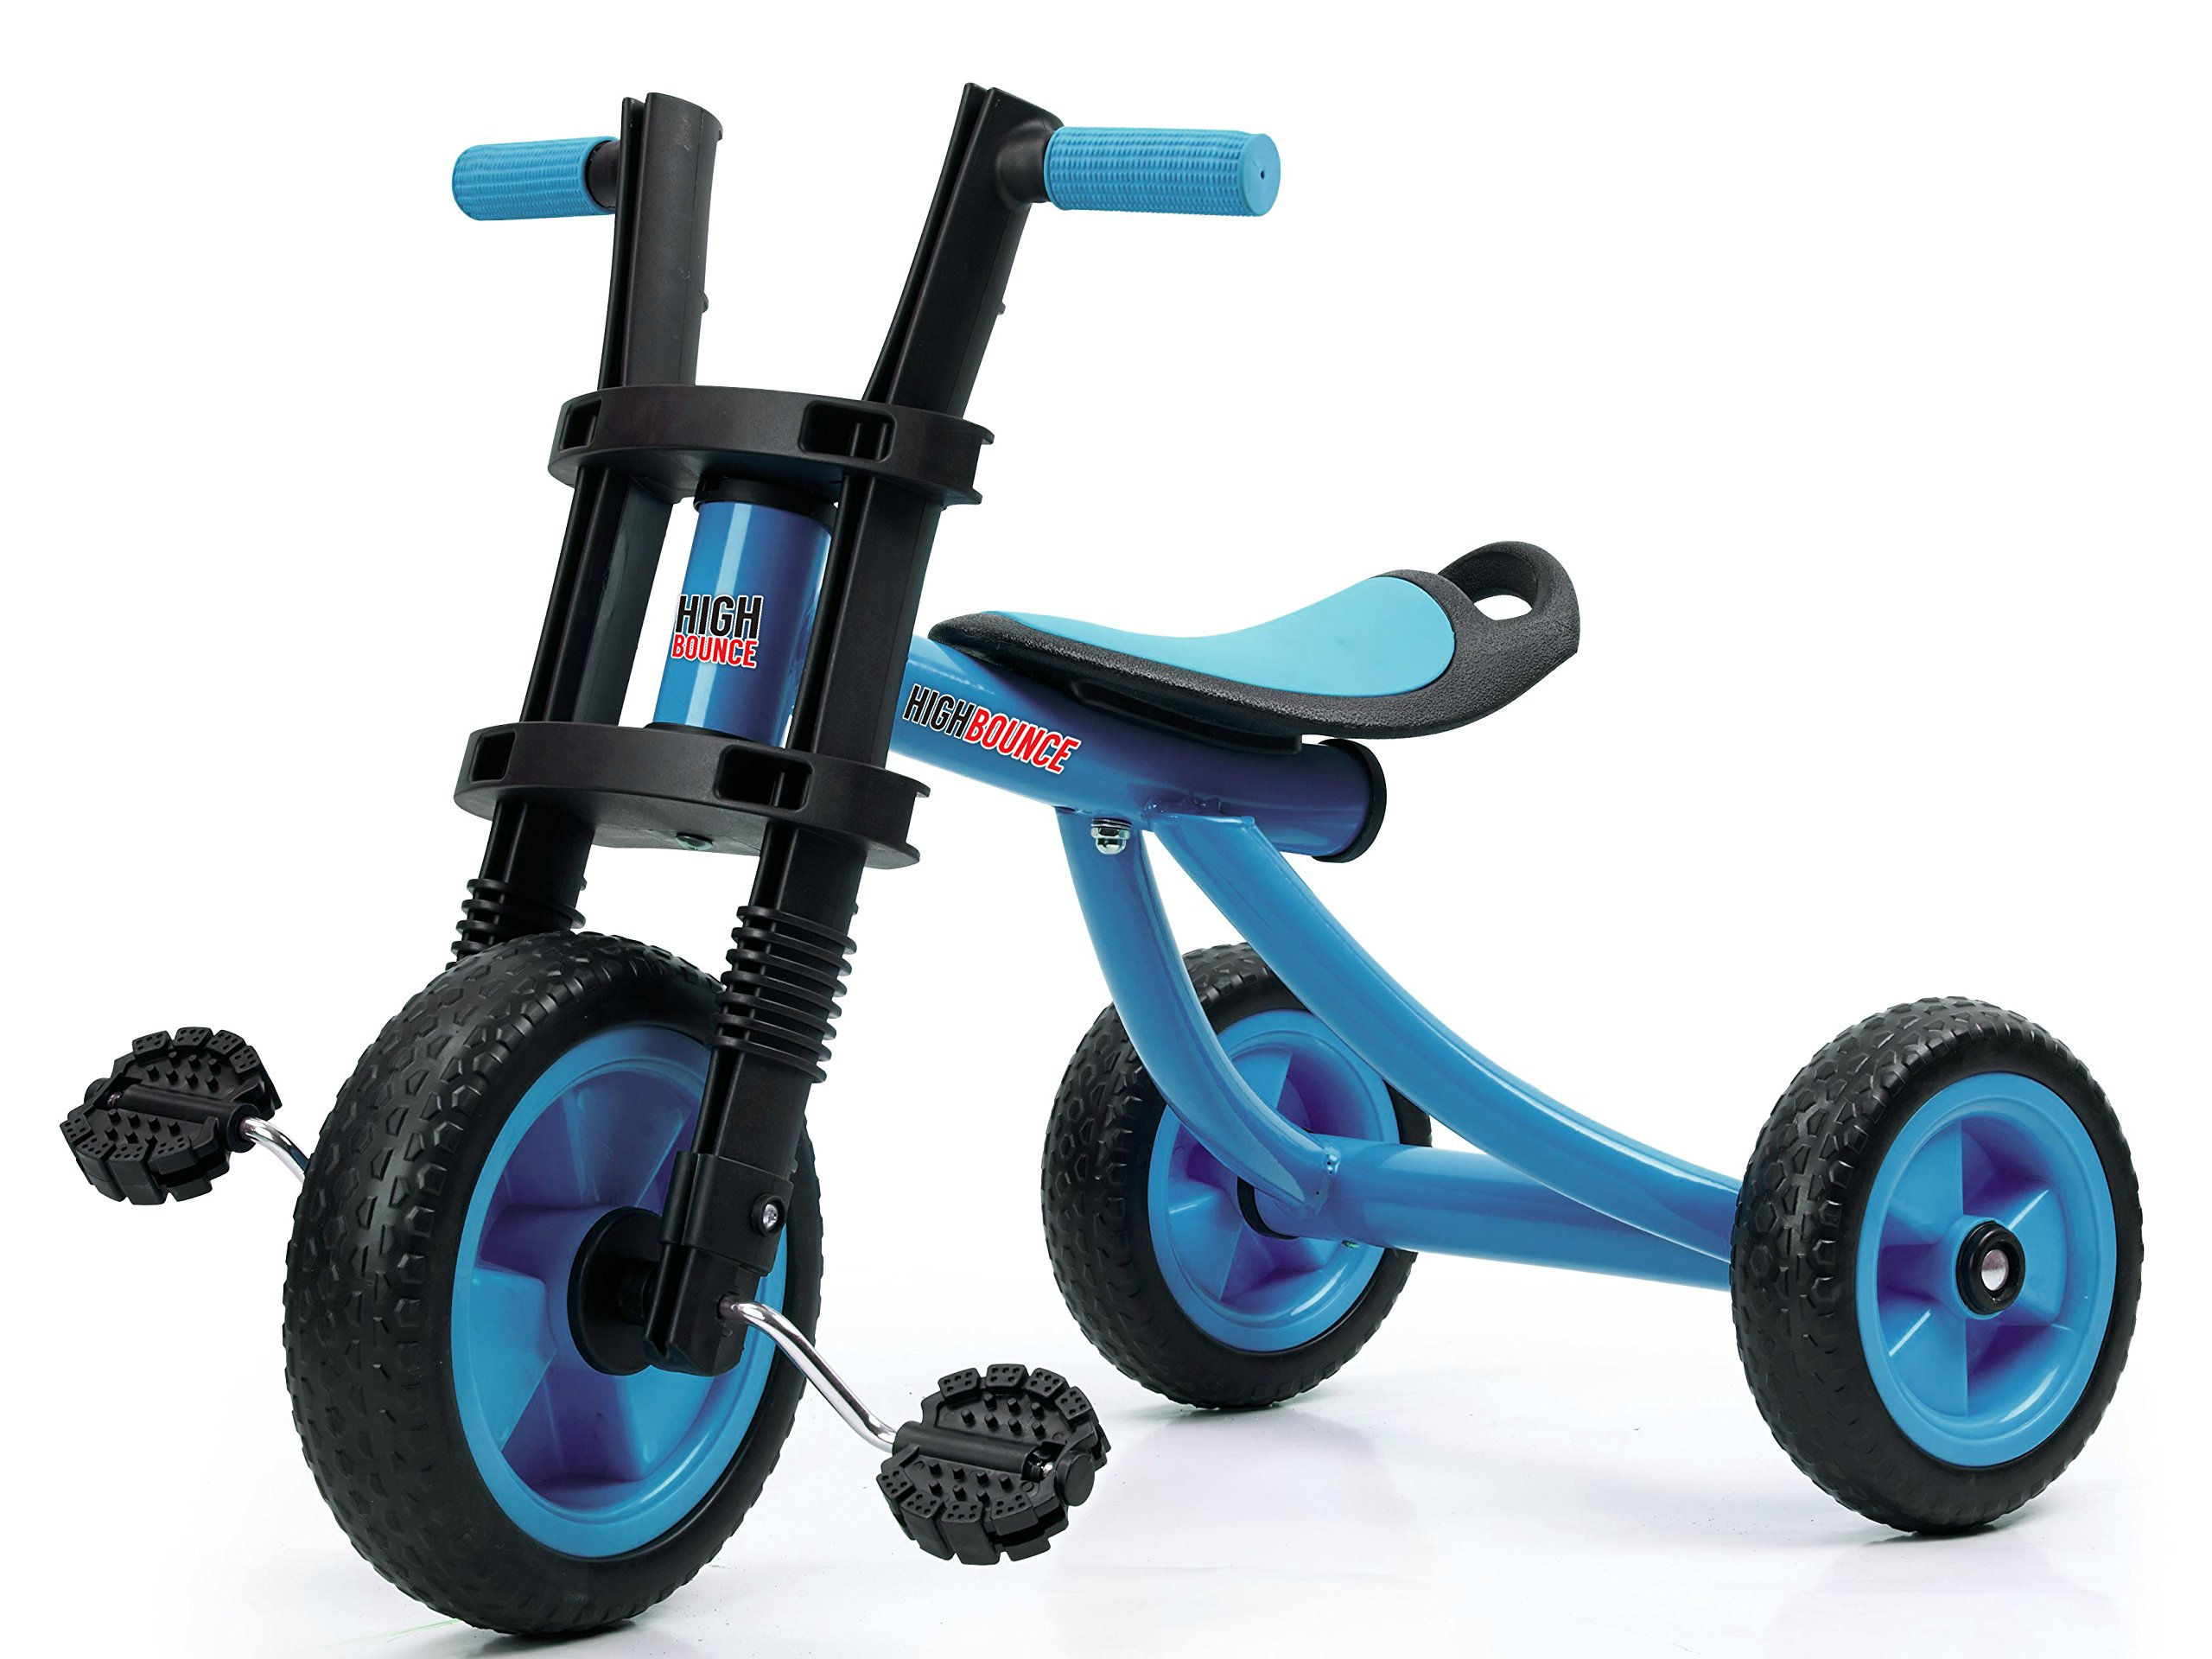 High Bounce Kids Tricycle - Extra Tall 3 Wheel Kids Trike, for Toddlers and Kids Ages 3-6 Adjustable Seat Tricycles, Soft Rubber Handle